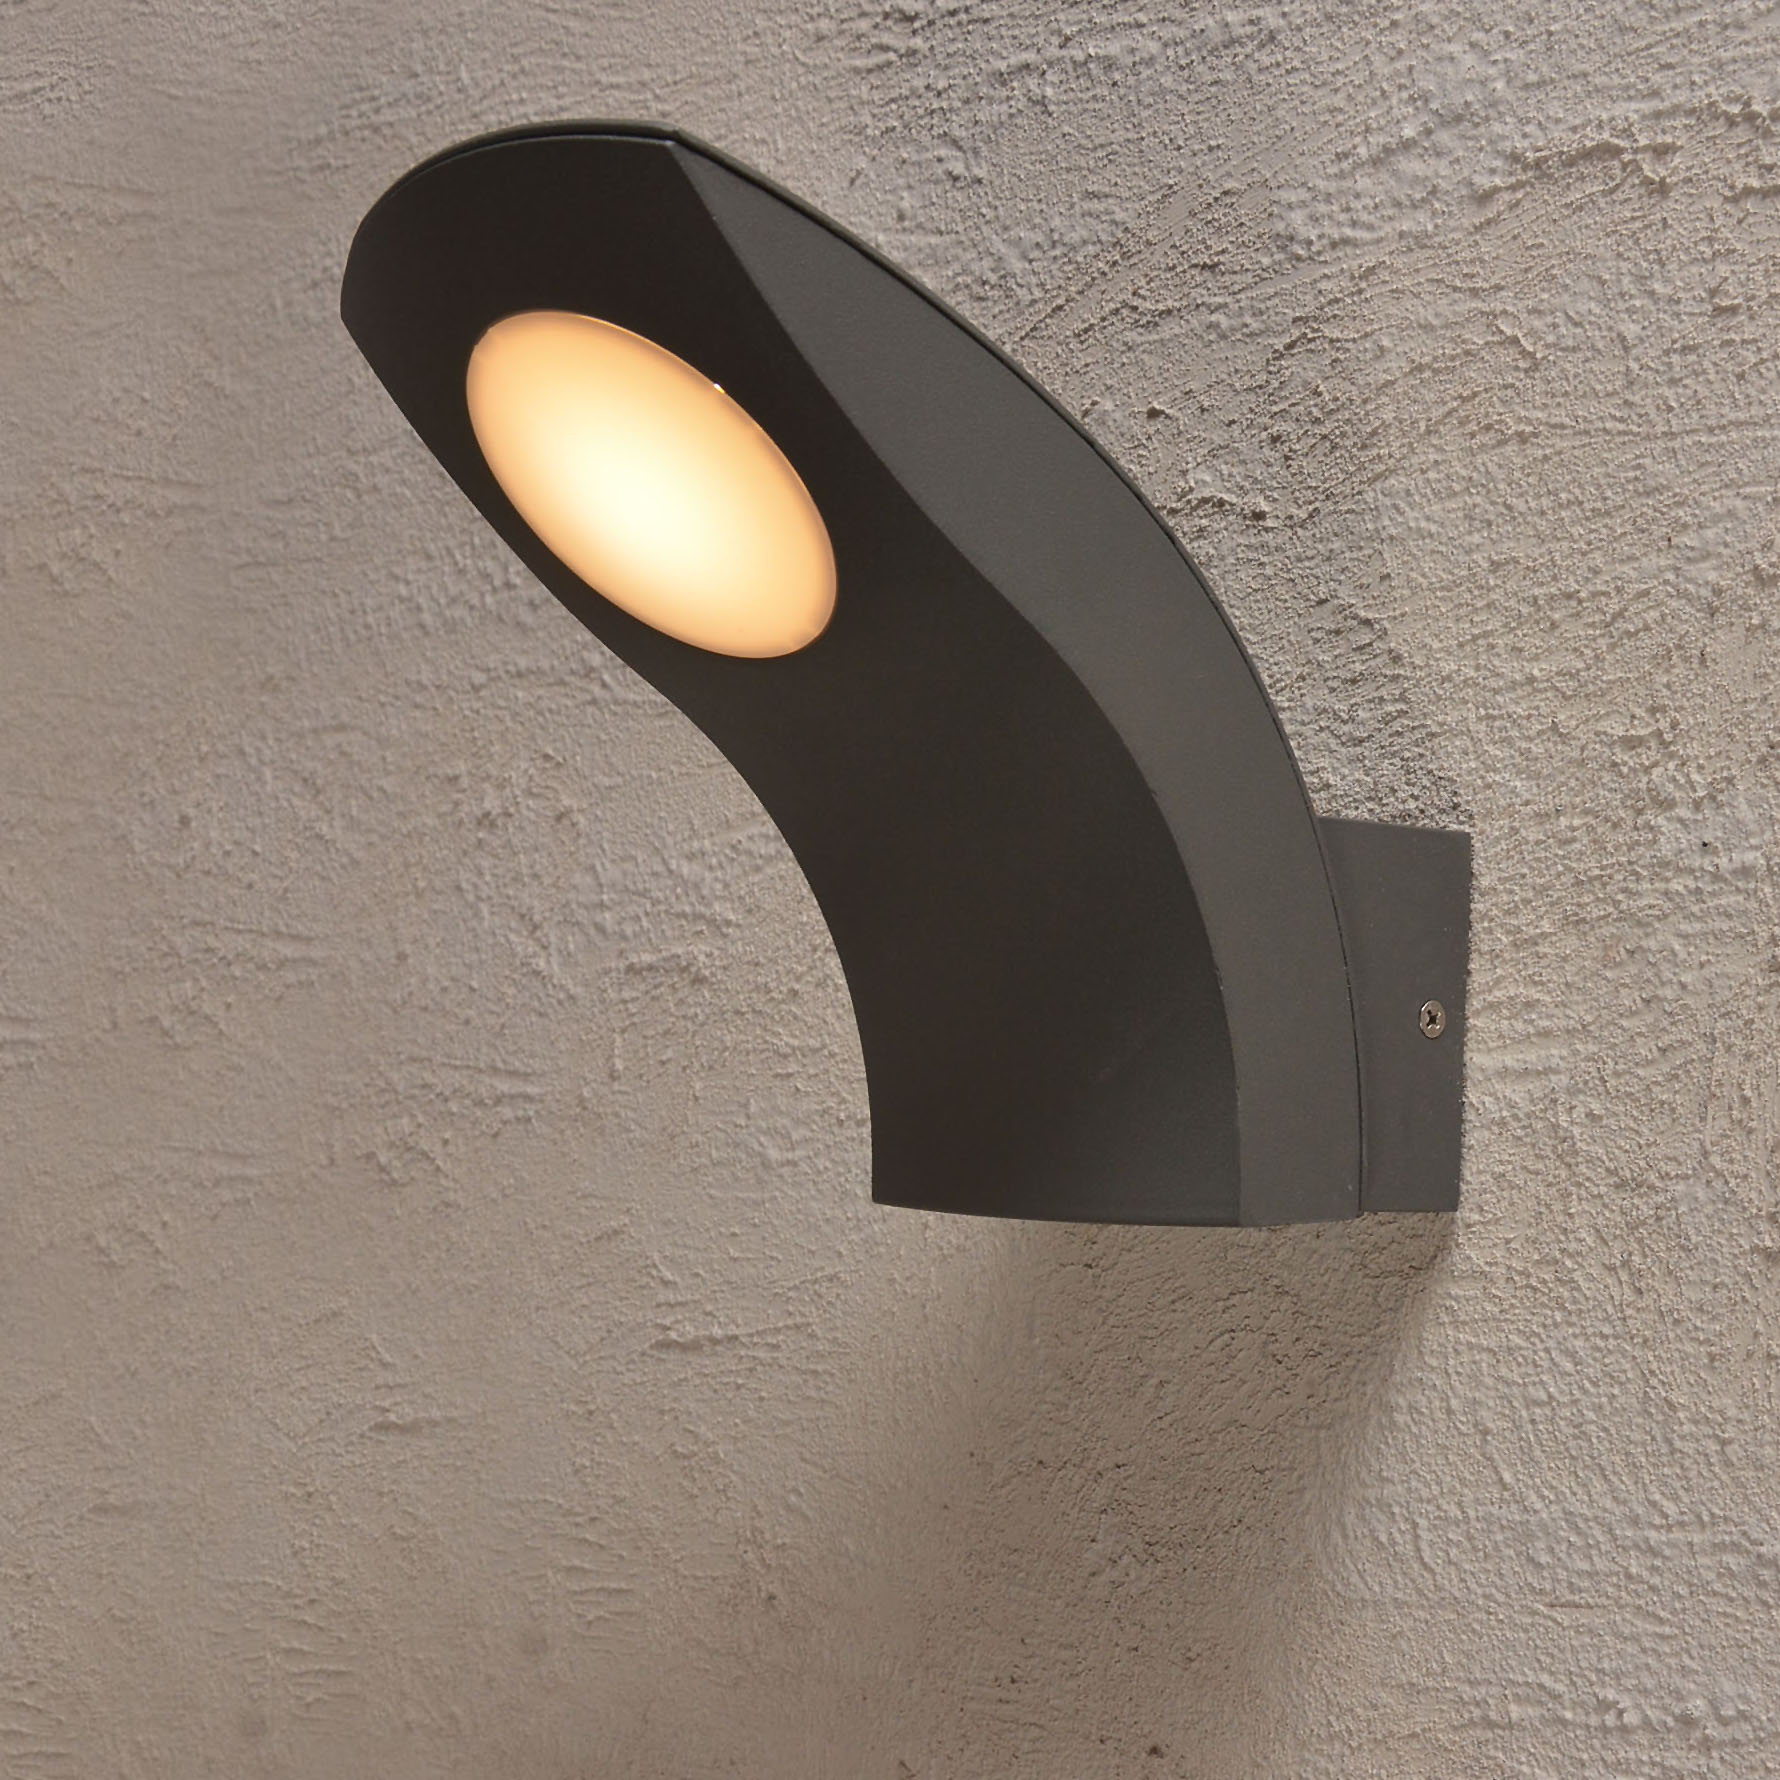 7W COB wall light IP65 QH-8086